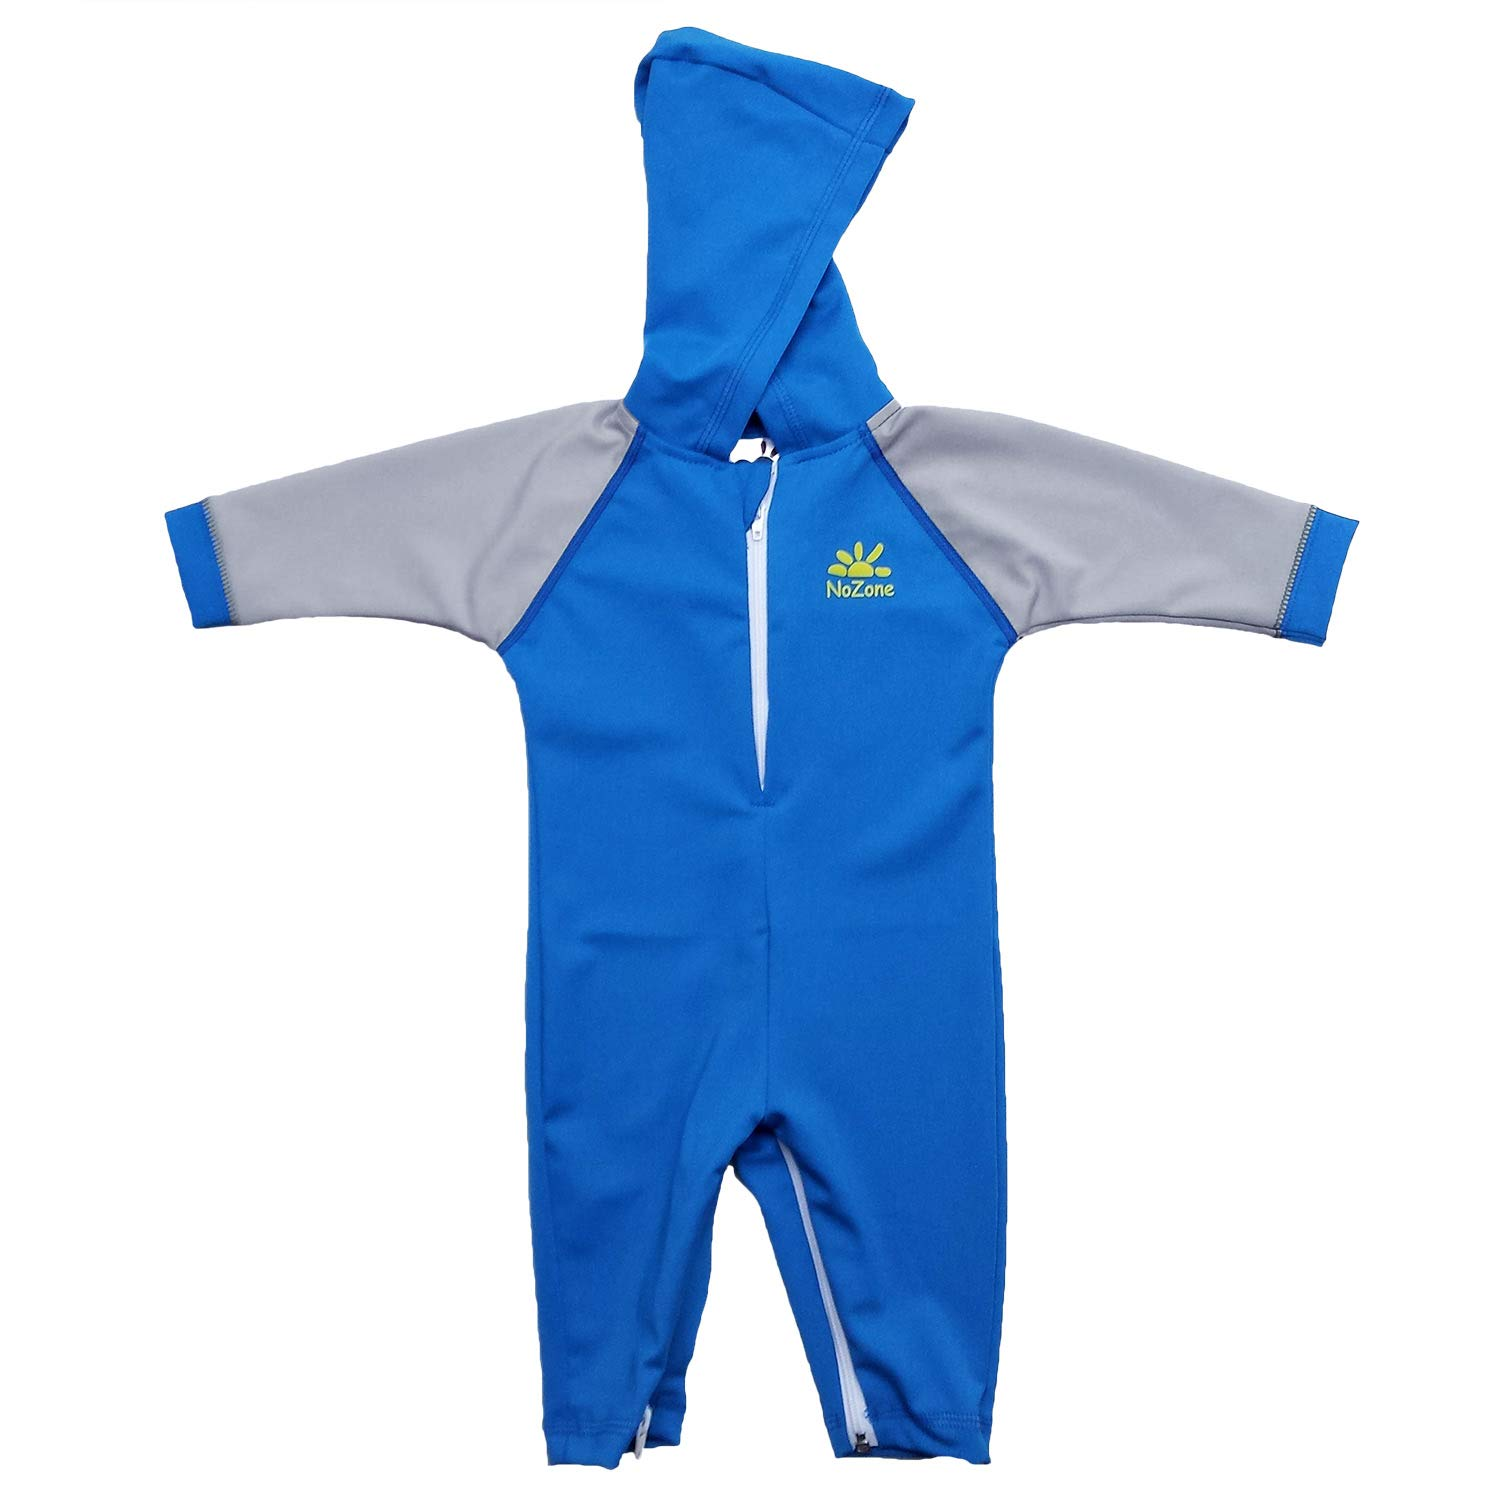 Nozone Kailua Hooded Baby Sun Protective Swimsuit in Smurf/Titanium, 18-24 Months 2030smtt18-24